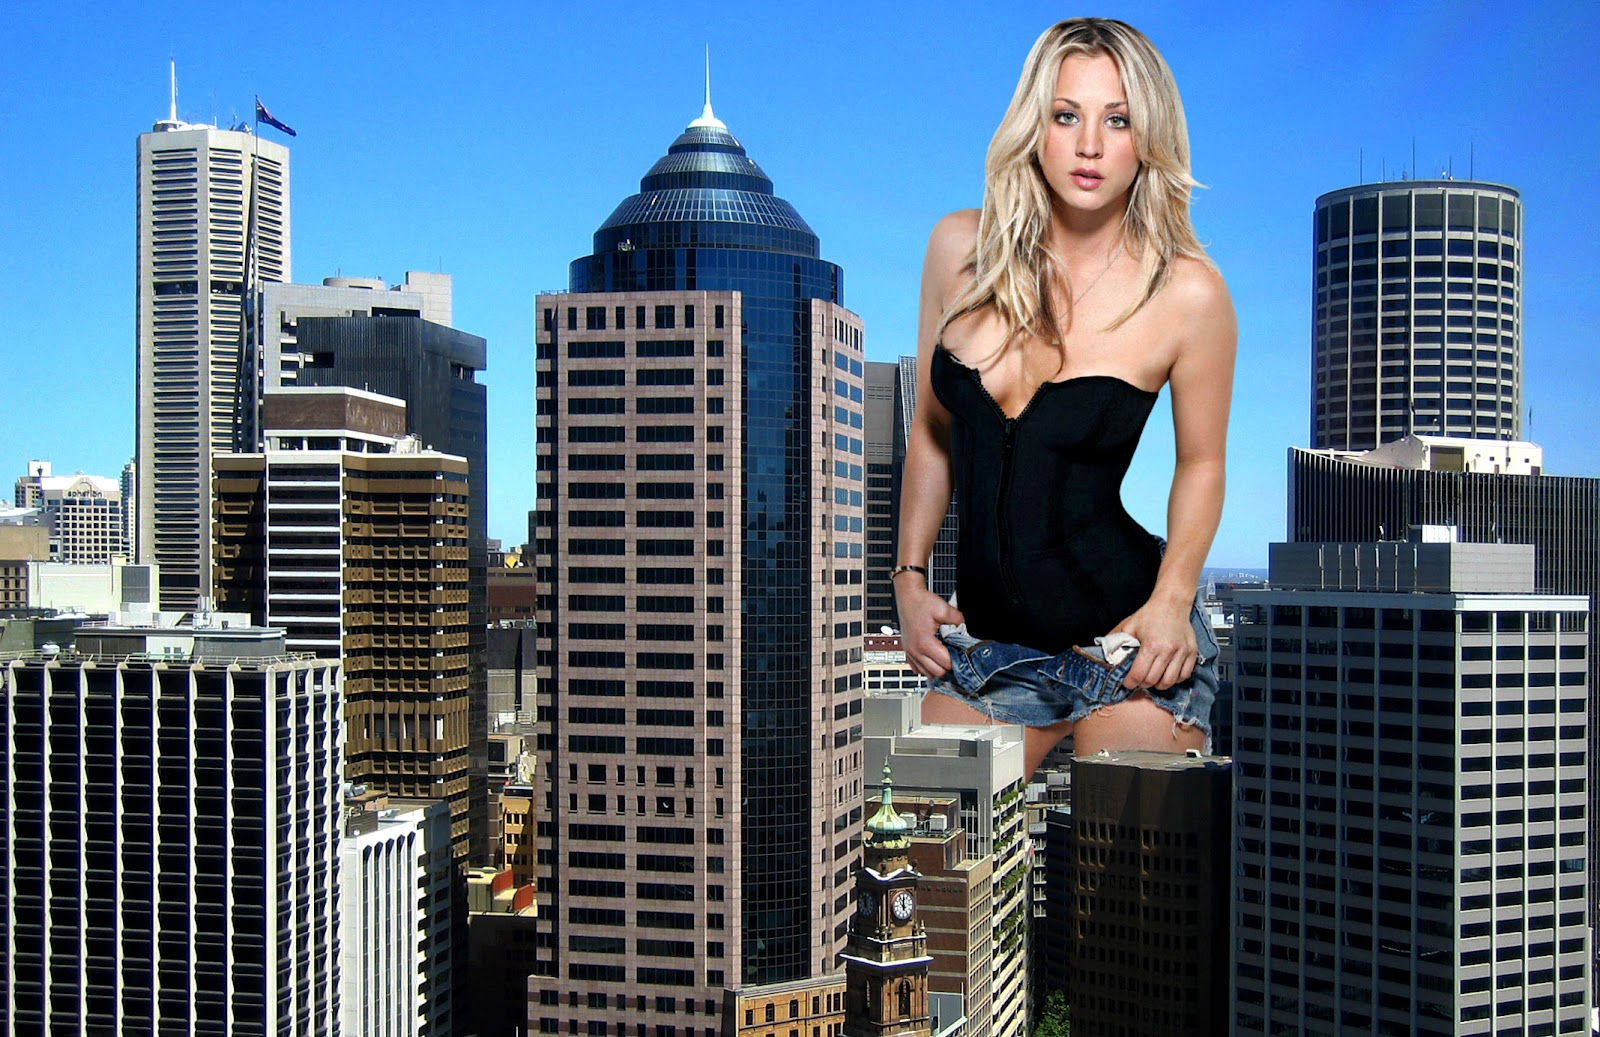 Giantess in the city